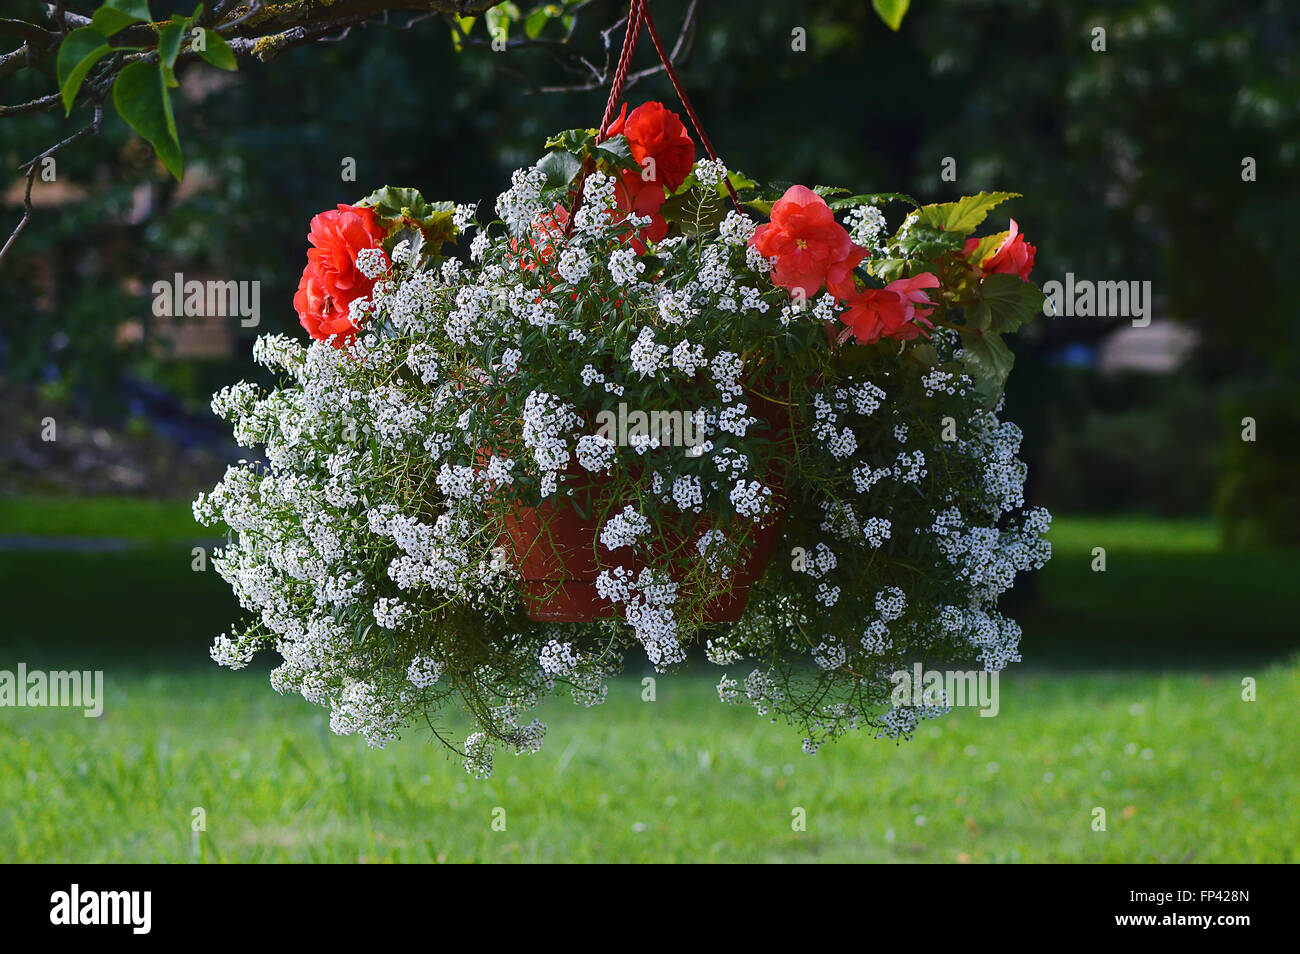 Red And White Flowers In A Hanging Planter In The Garden Stock Photo